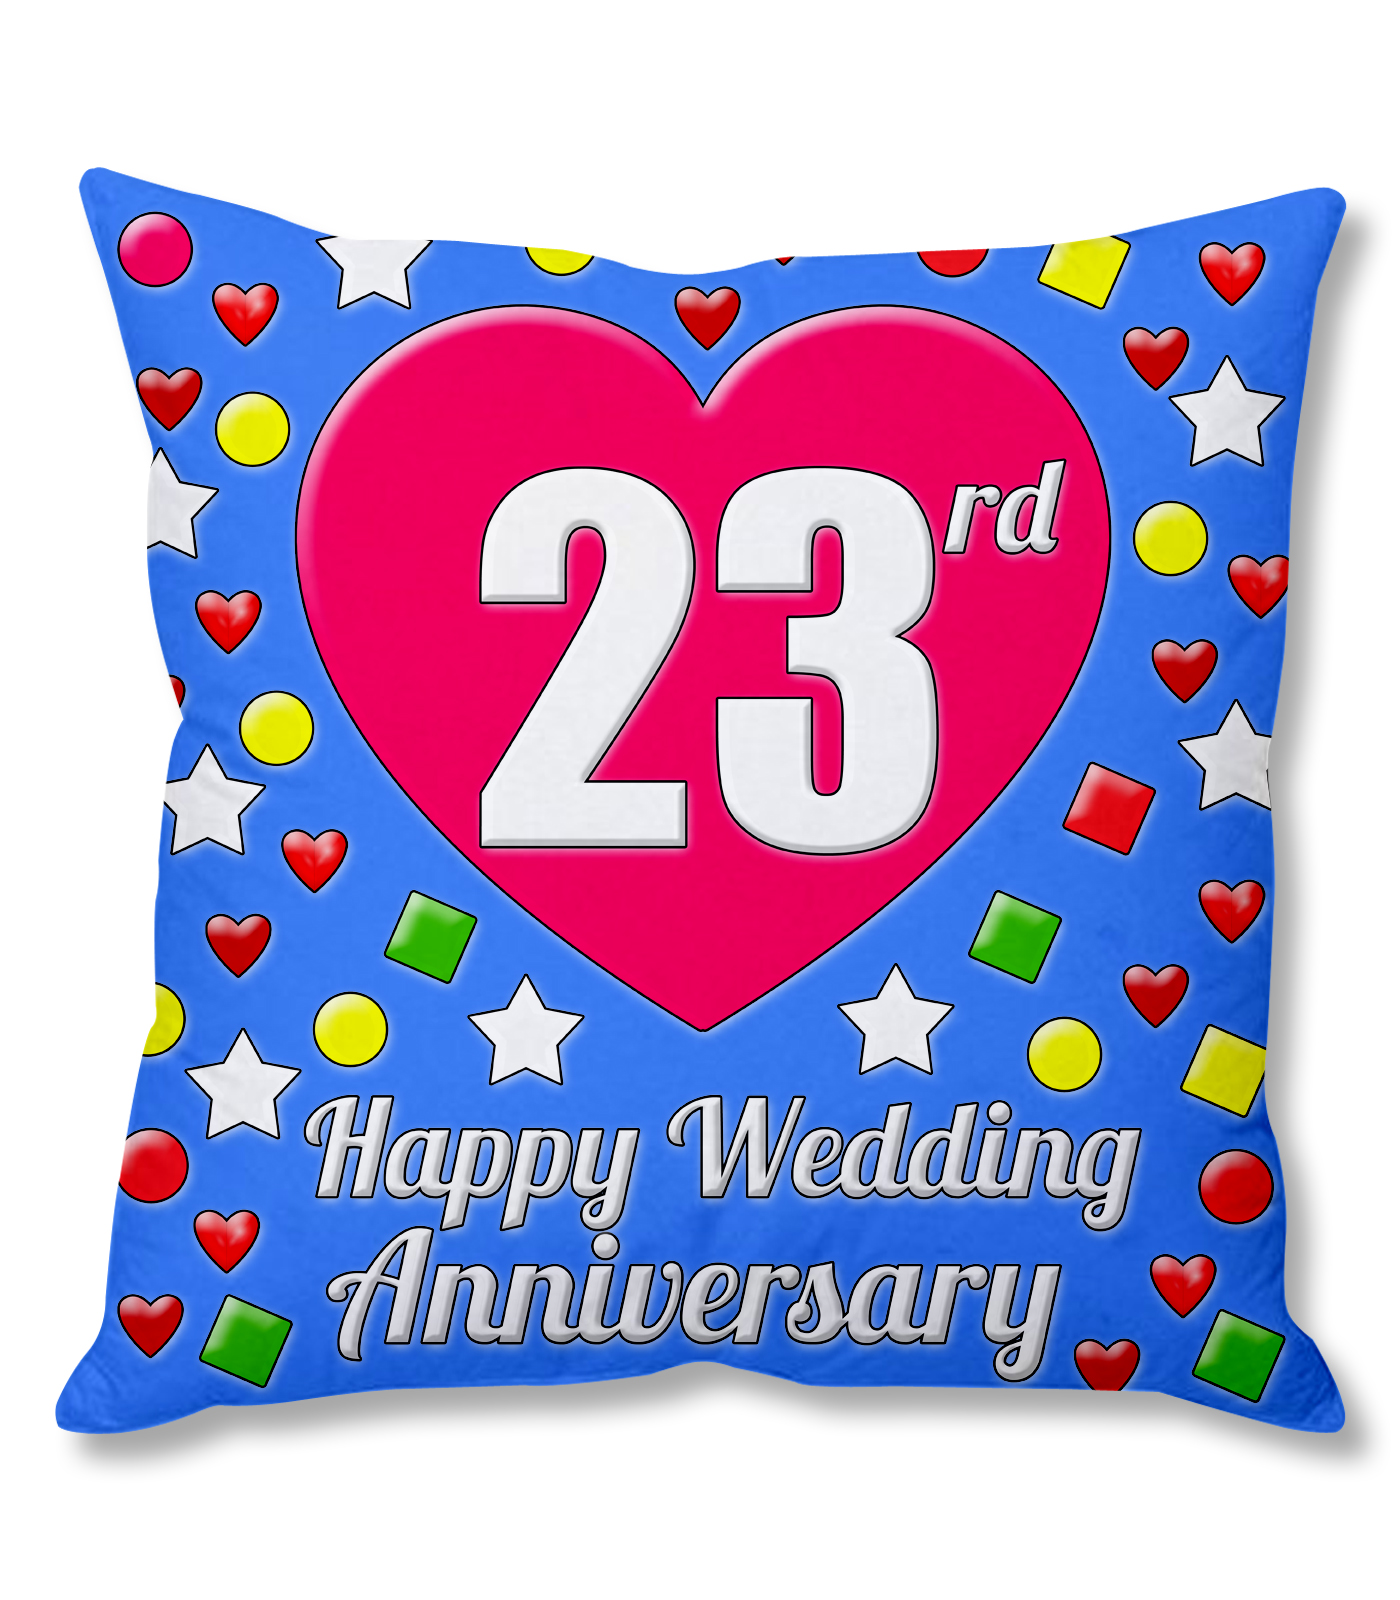 23rd happy wedding anniversary multi colour printed cushion cover buy online from shopclues com